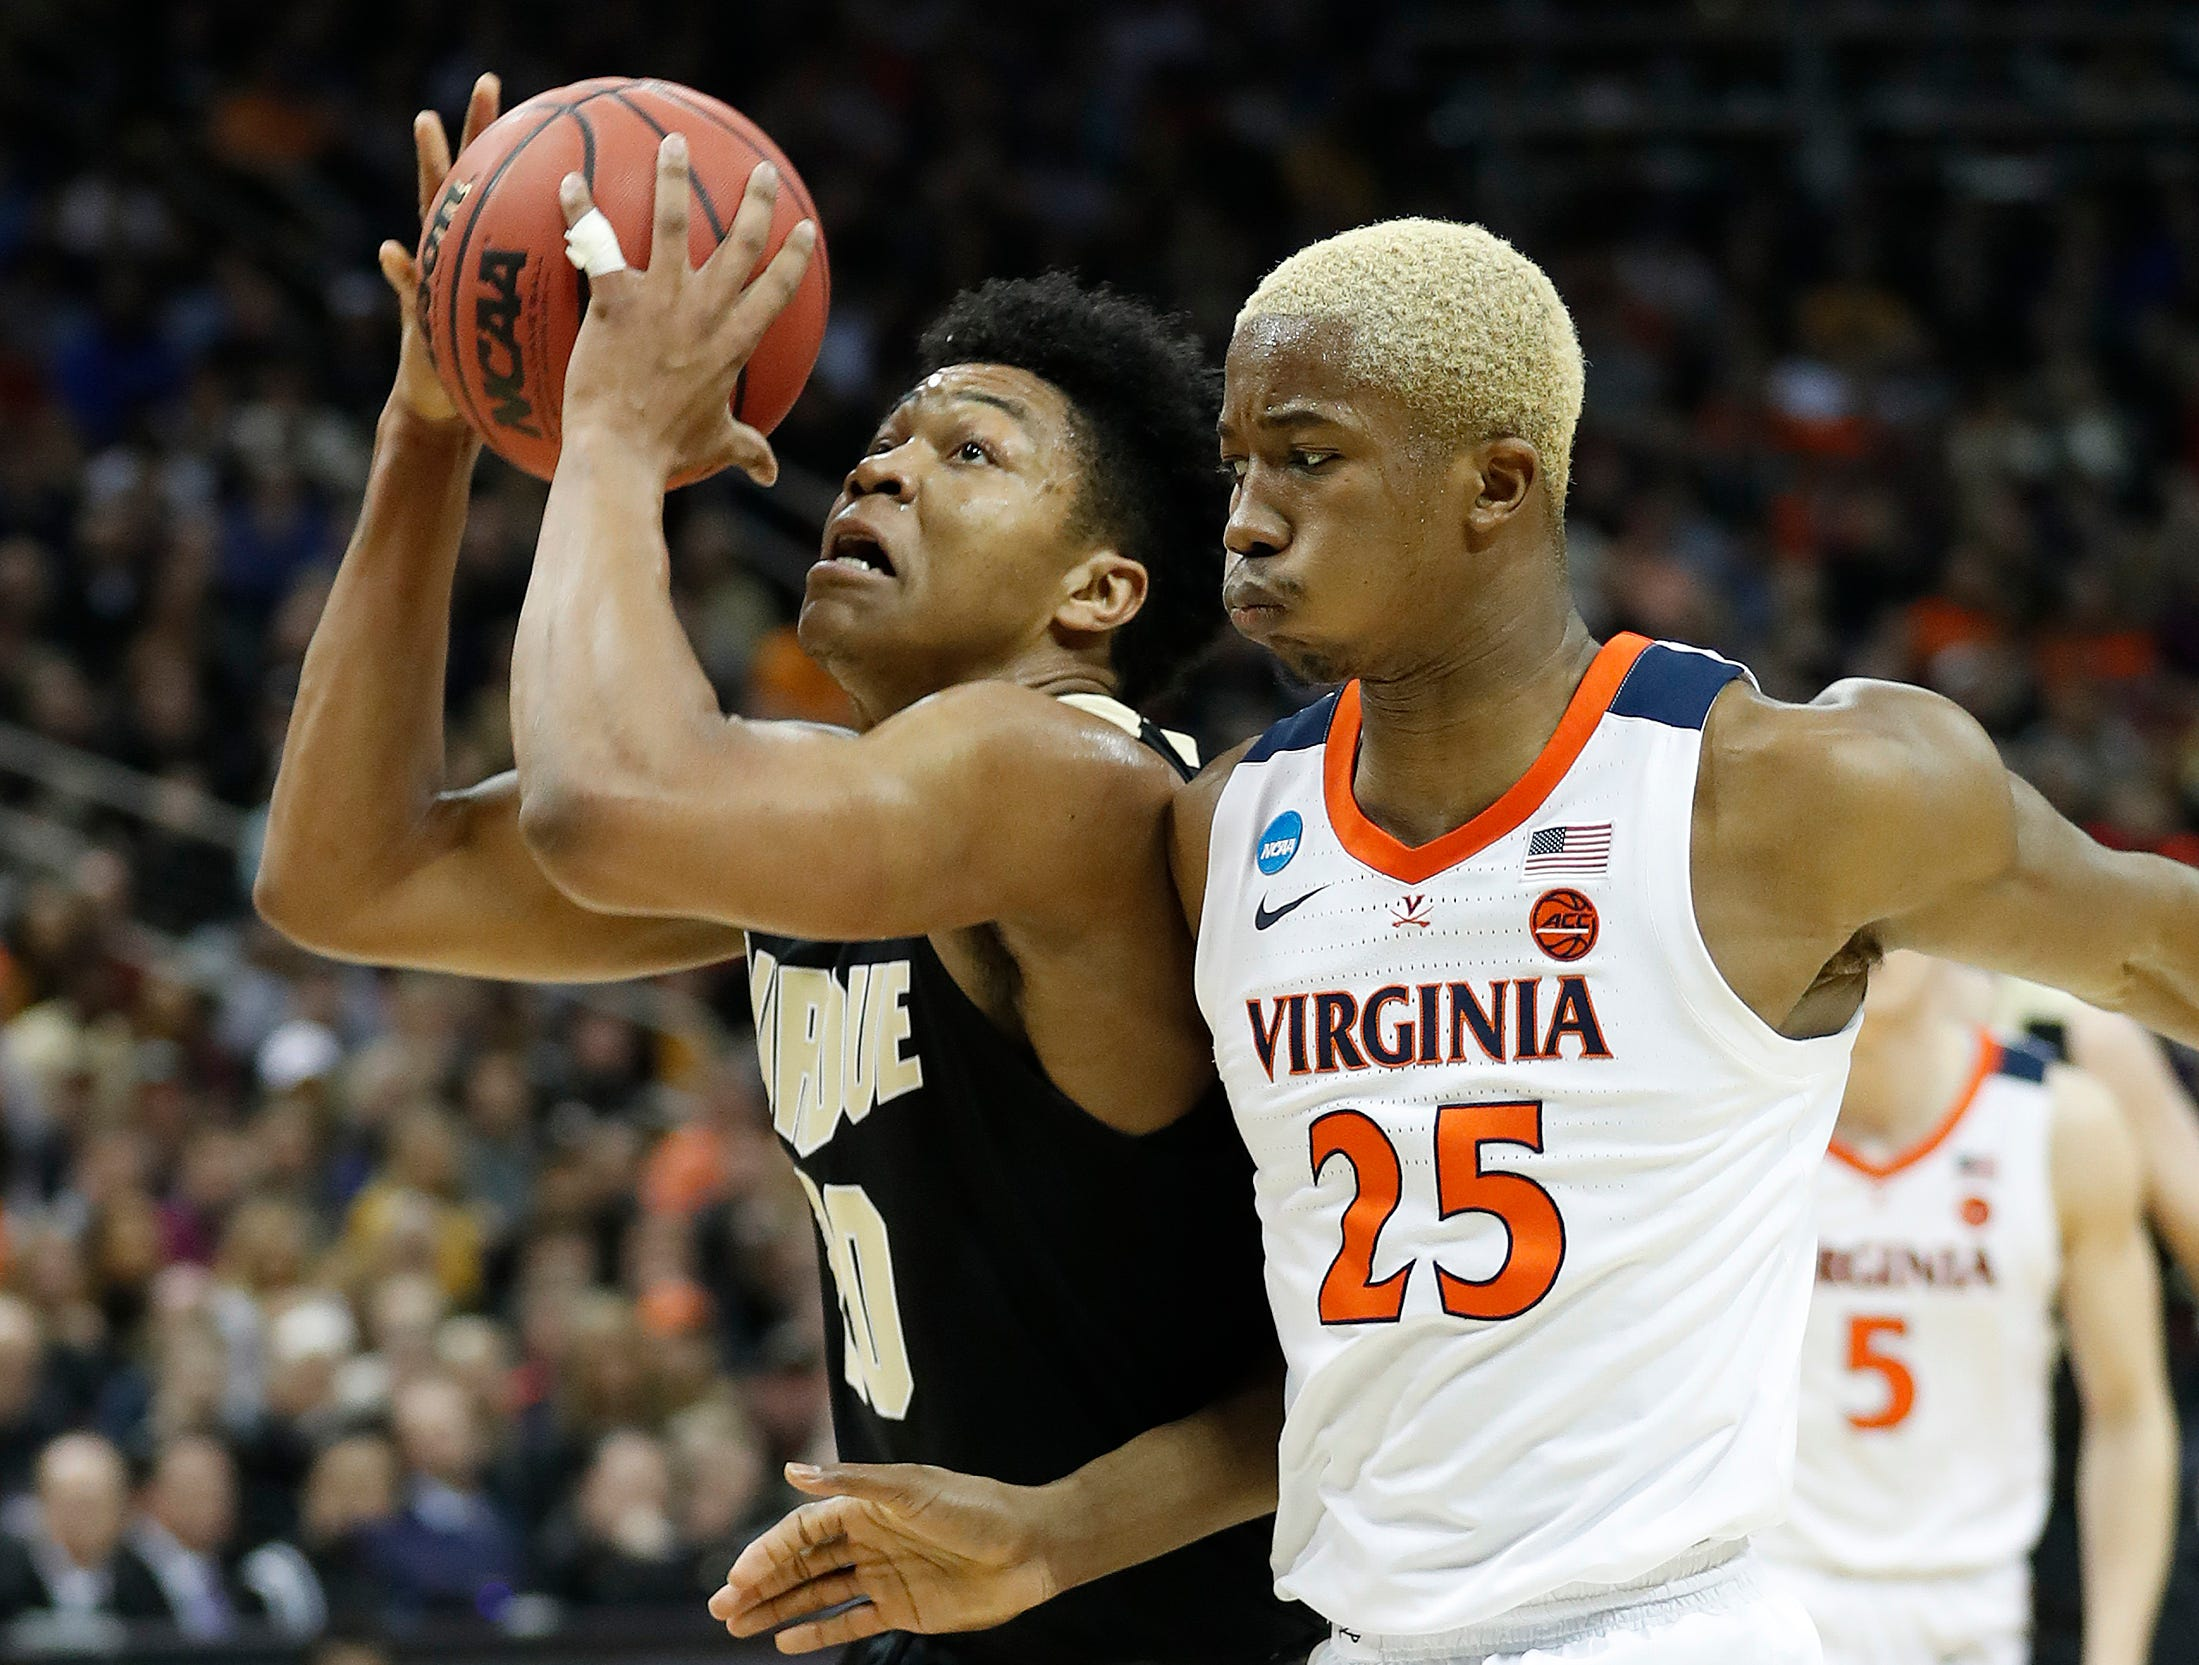 "Purdue Boilermakers guard Nojel Eastern (20) drives on Virginia Cavaliers forward Mamadi Diakite (25) in the first half of their NCAA Division I Basketball Championship ""Elite 8"" basketball game at the KFC Yum! Center in Louisville, KY., on Saturday, Mar 30, 2019."